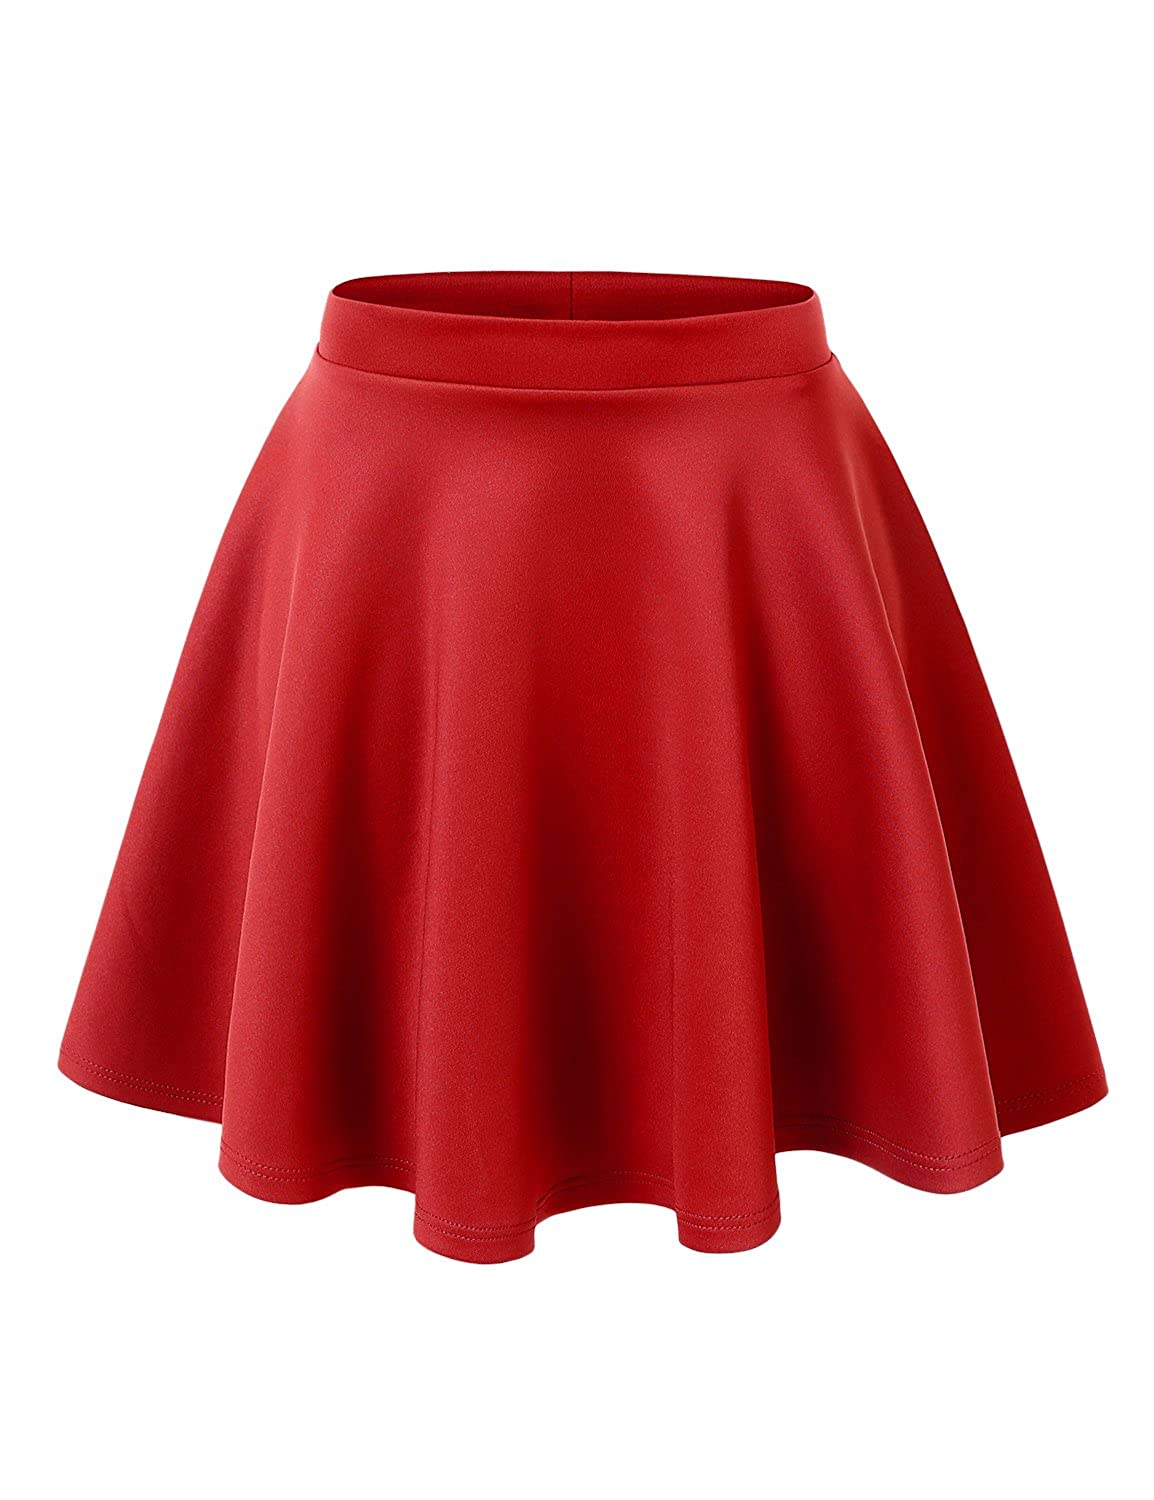 UU Fashion Women's Premium Plus Size Basic Versatile Stretchy Flared Skater Skirt UUWB1034